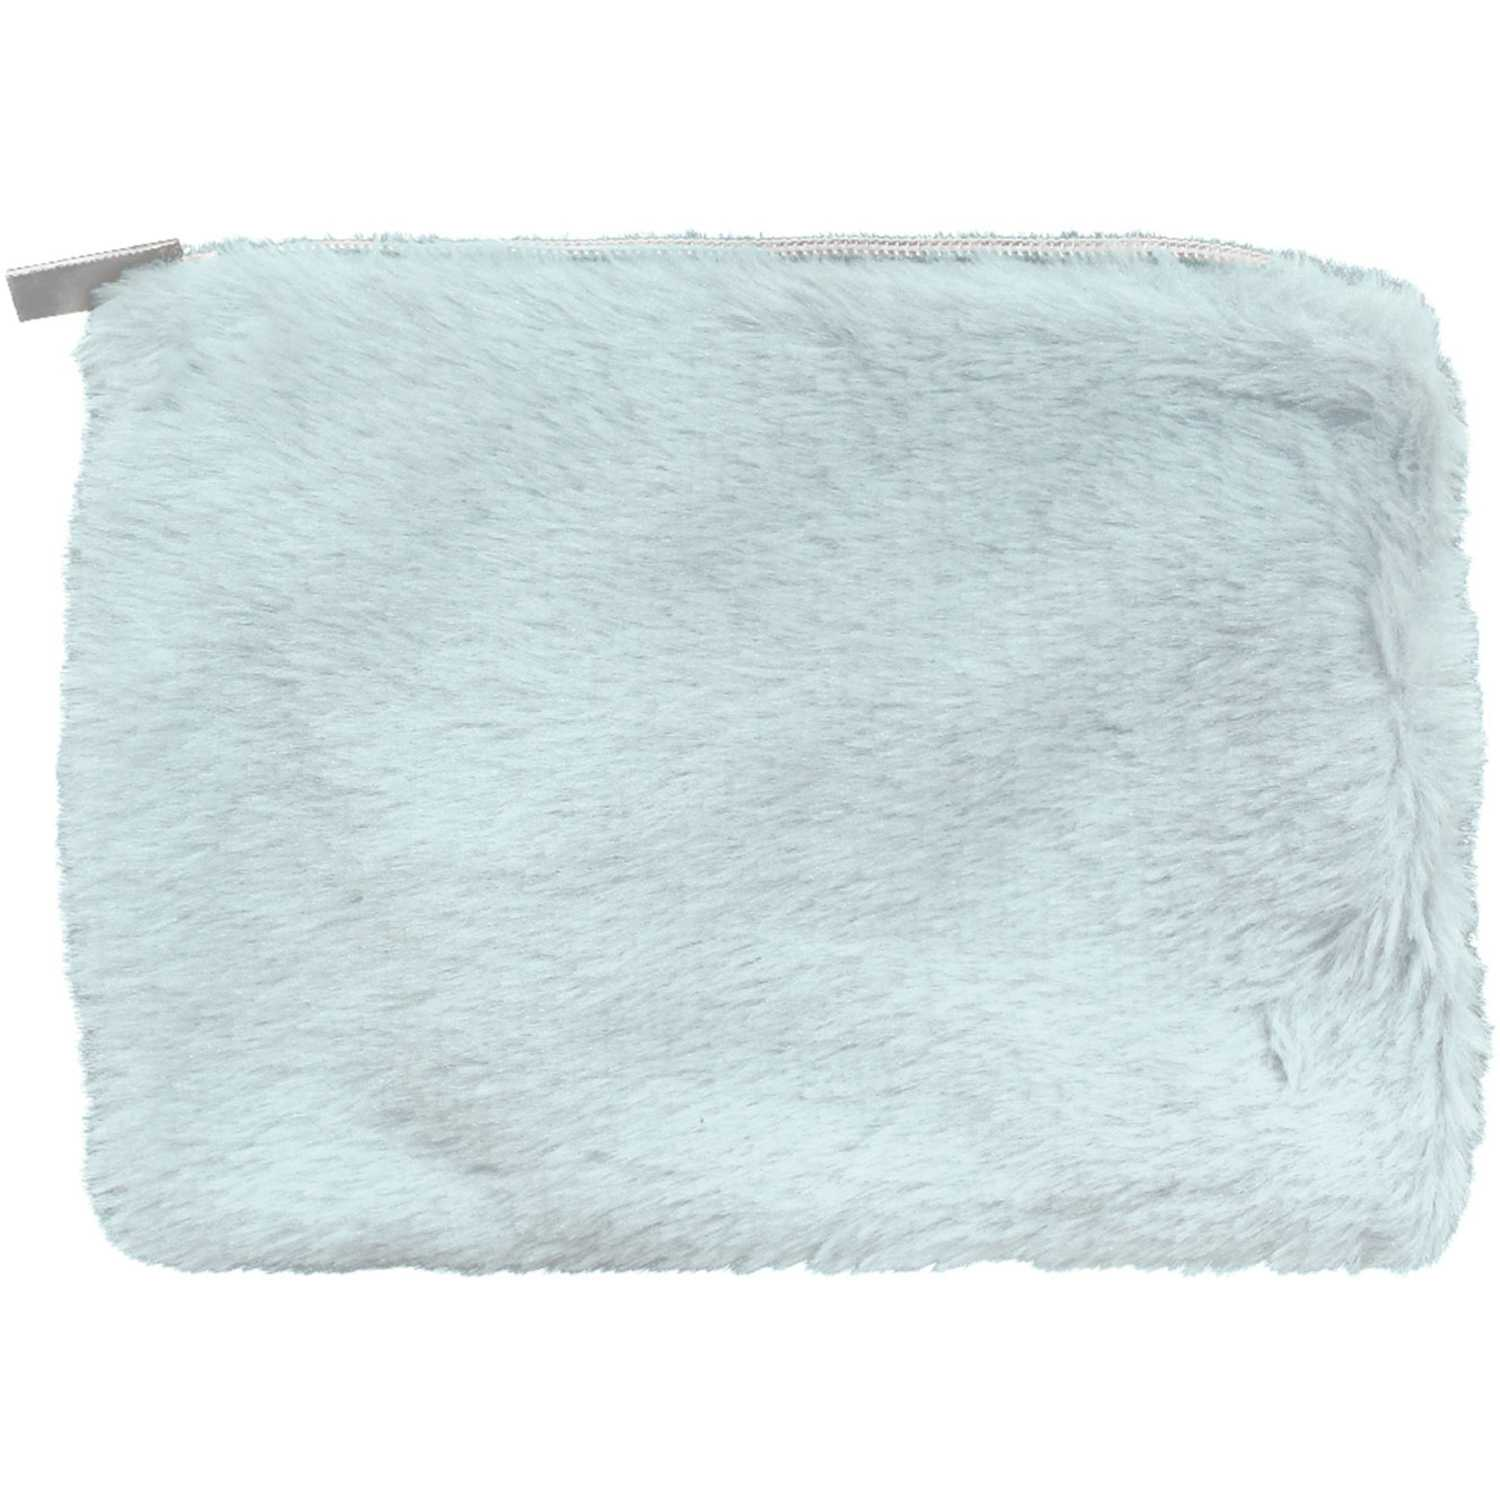 Sparks Beauty Furry Pouch Baby Blue Cosmetiqueras